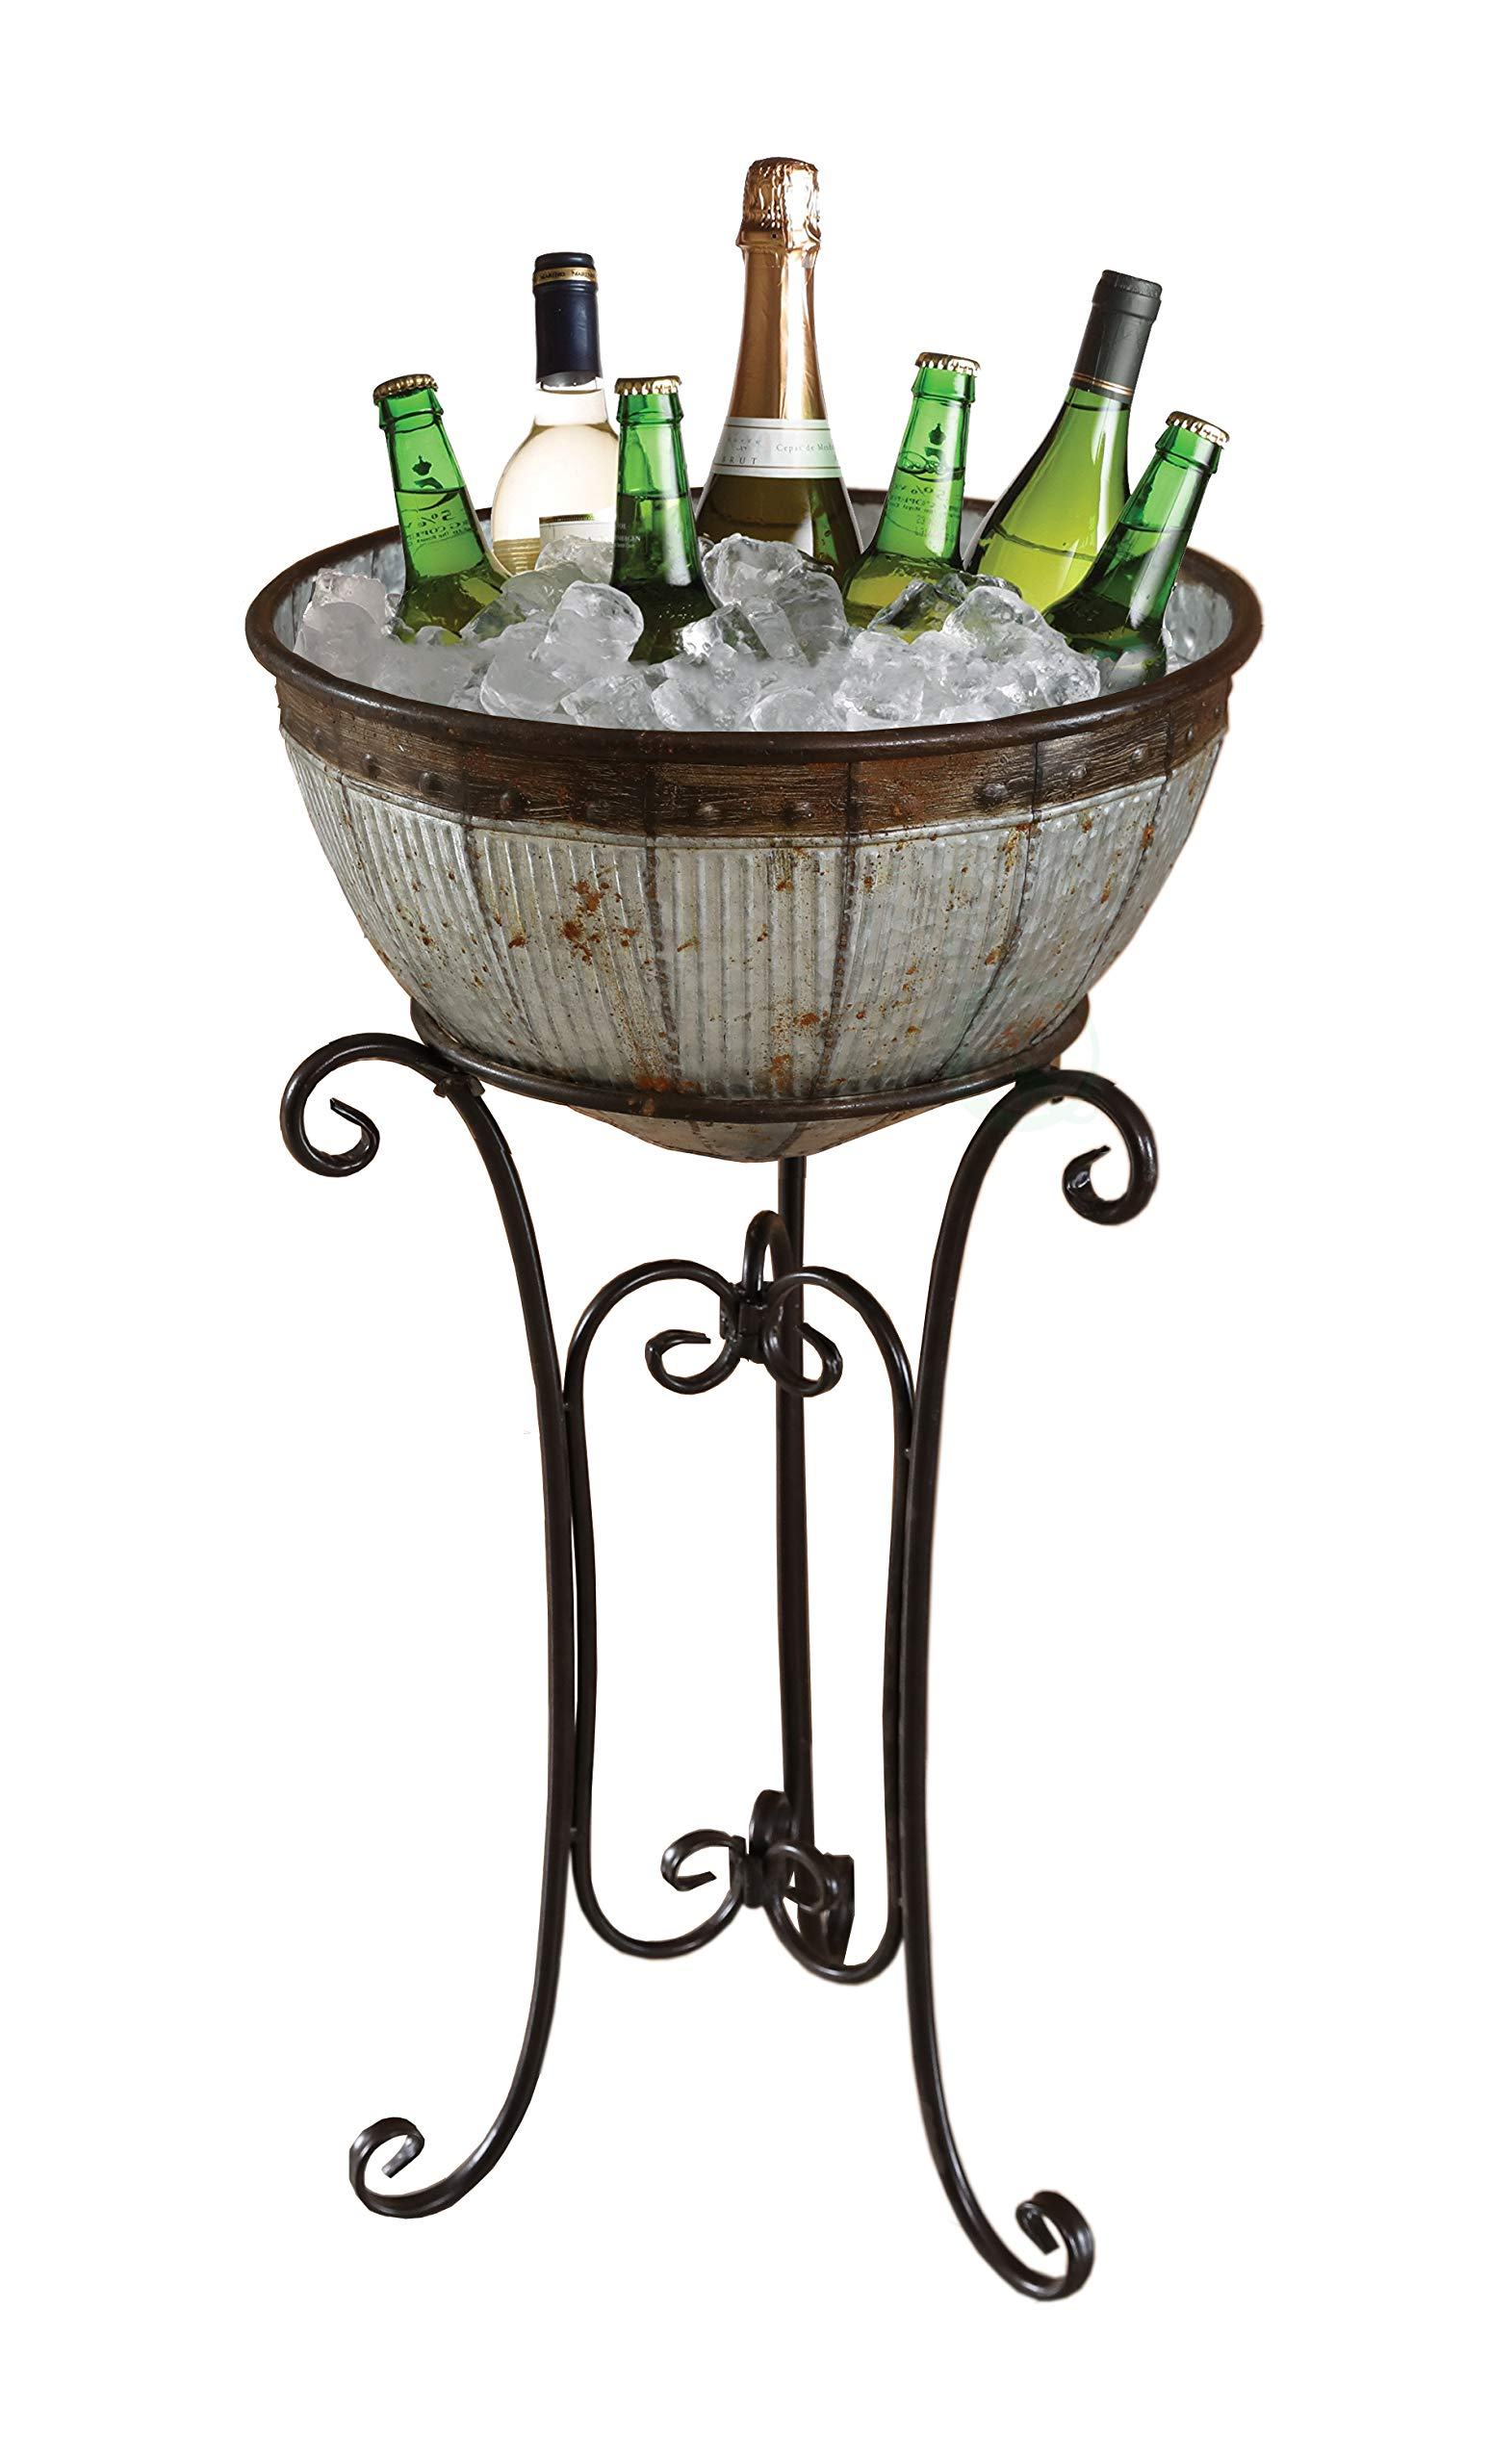 Vintiquewise QI003628 Galvanized Metal Standing Beverage Cooler Tub with Liner, Large, Gray